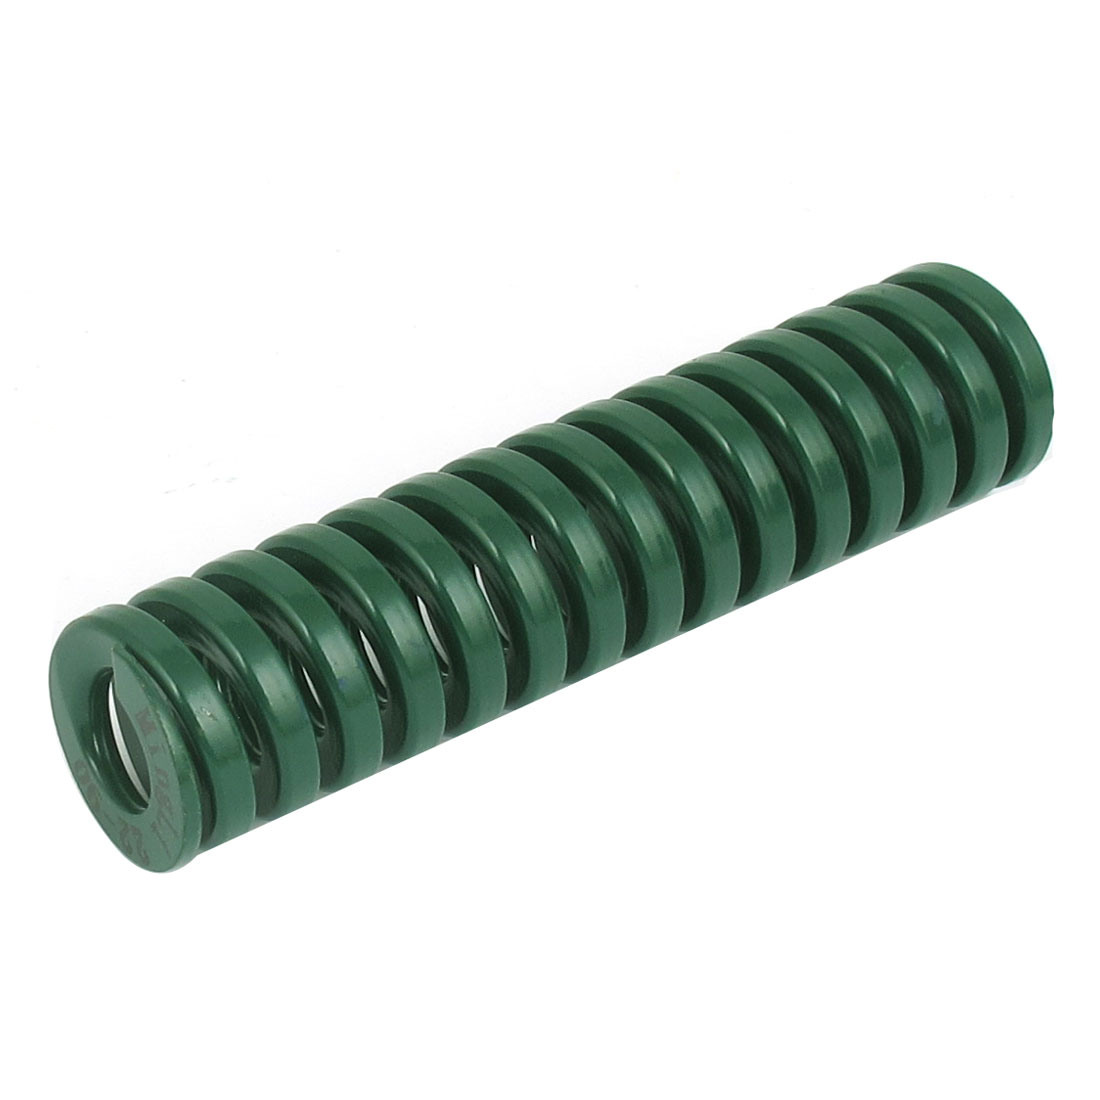 22mm OD 90mm Long Heavy Load Spiral Stamping Compression Die Spring Green